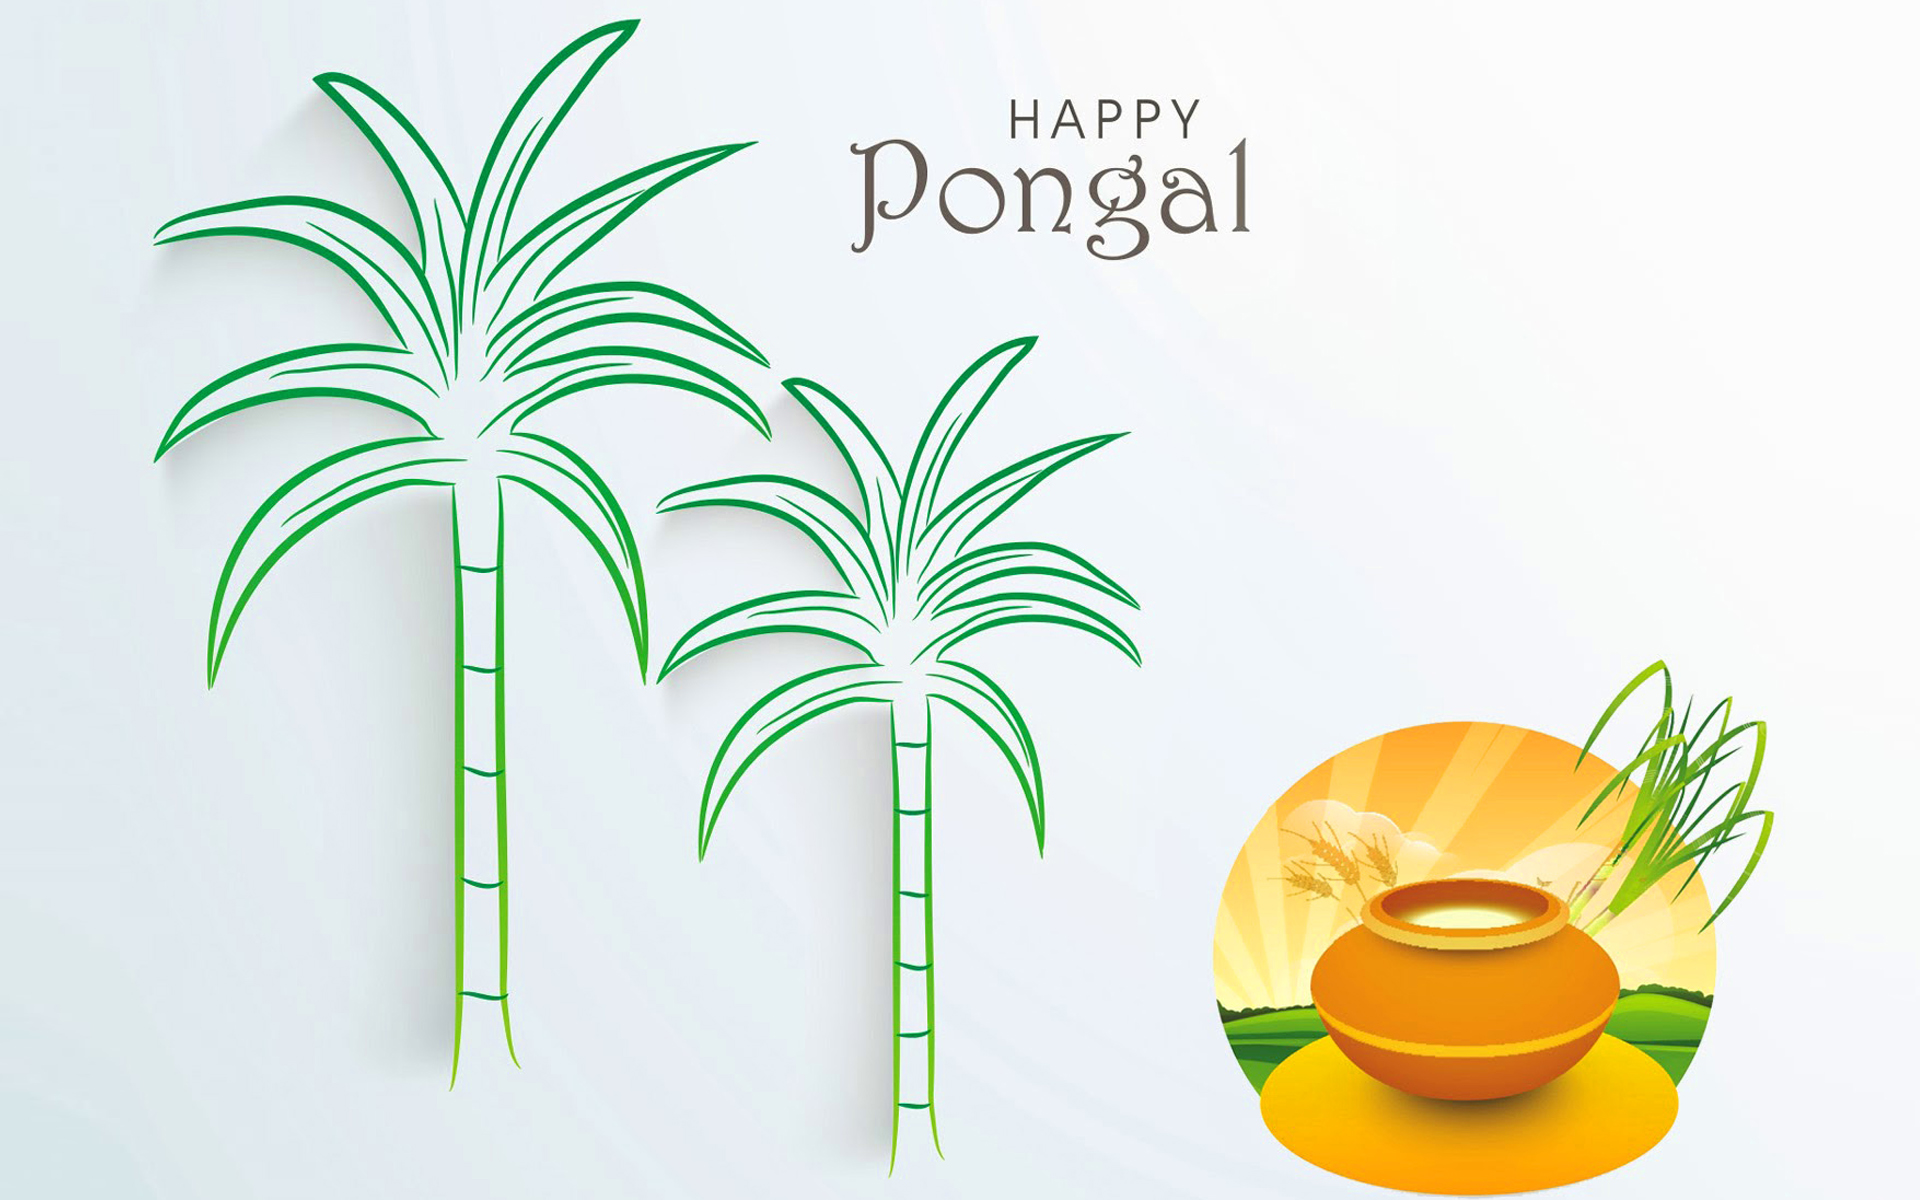 Happy Pongal HD Picture Free Download